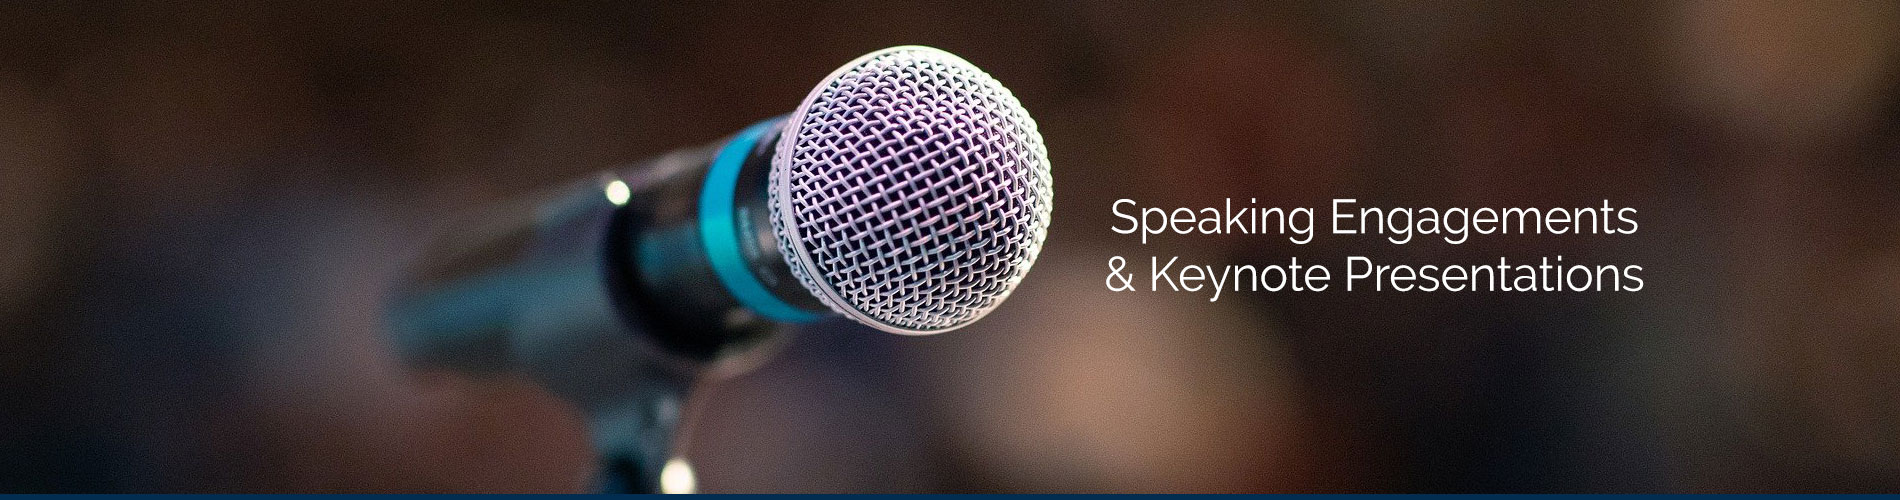 Speaking Engagements and Keynote Presentations from Kompass Media Dublin Ireland